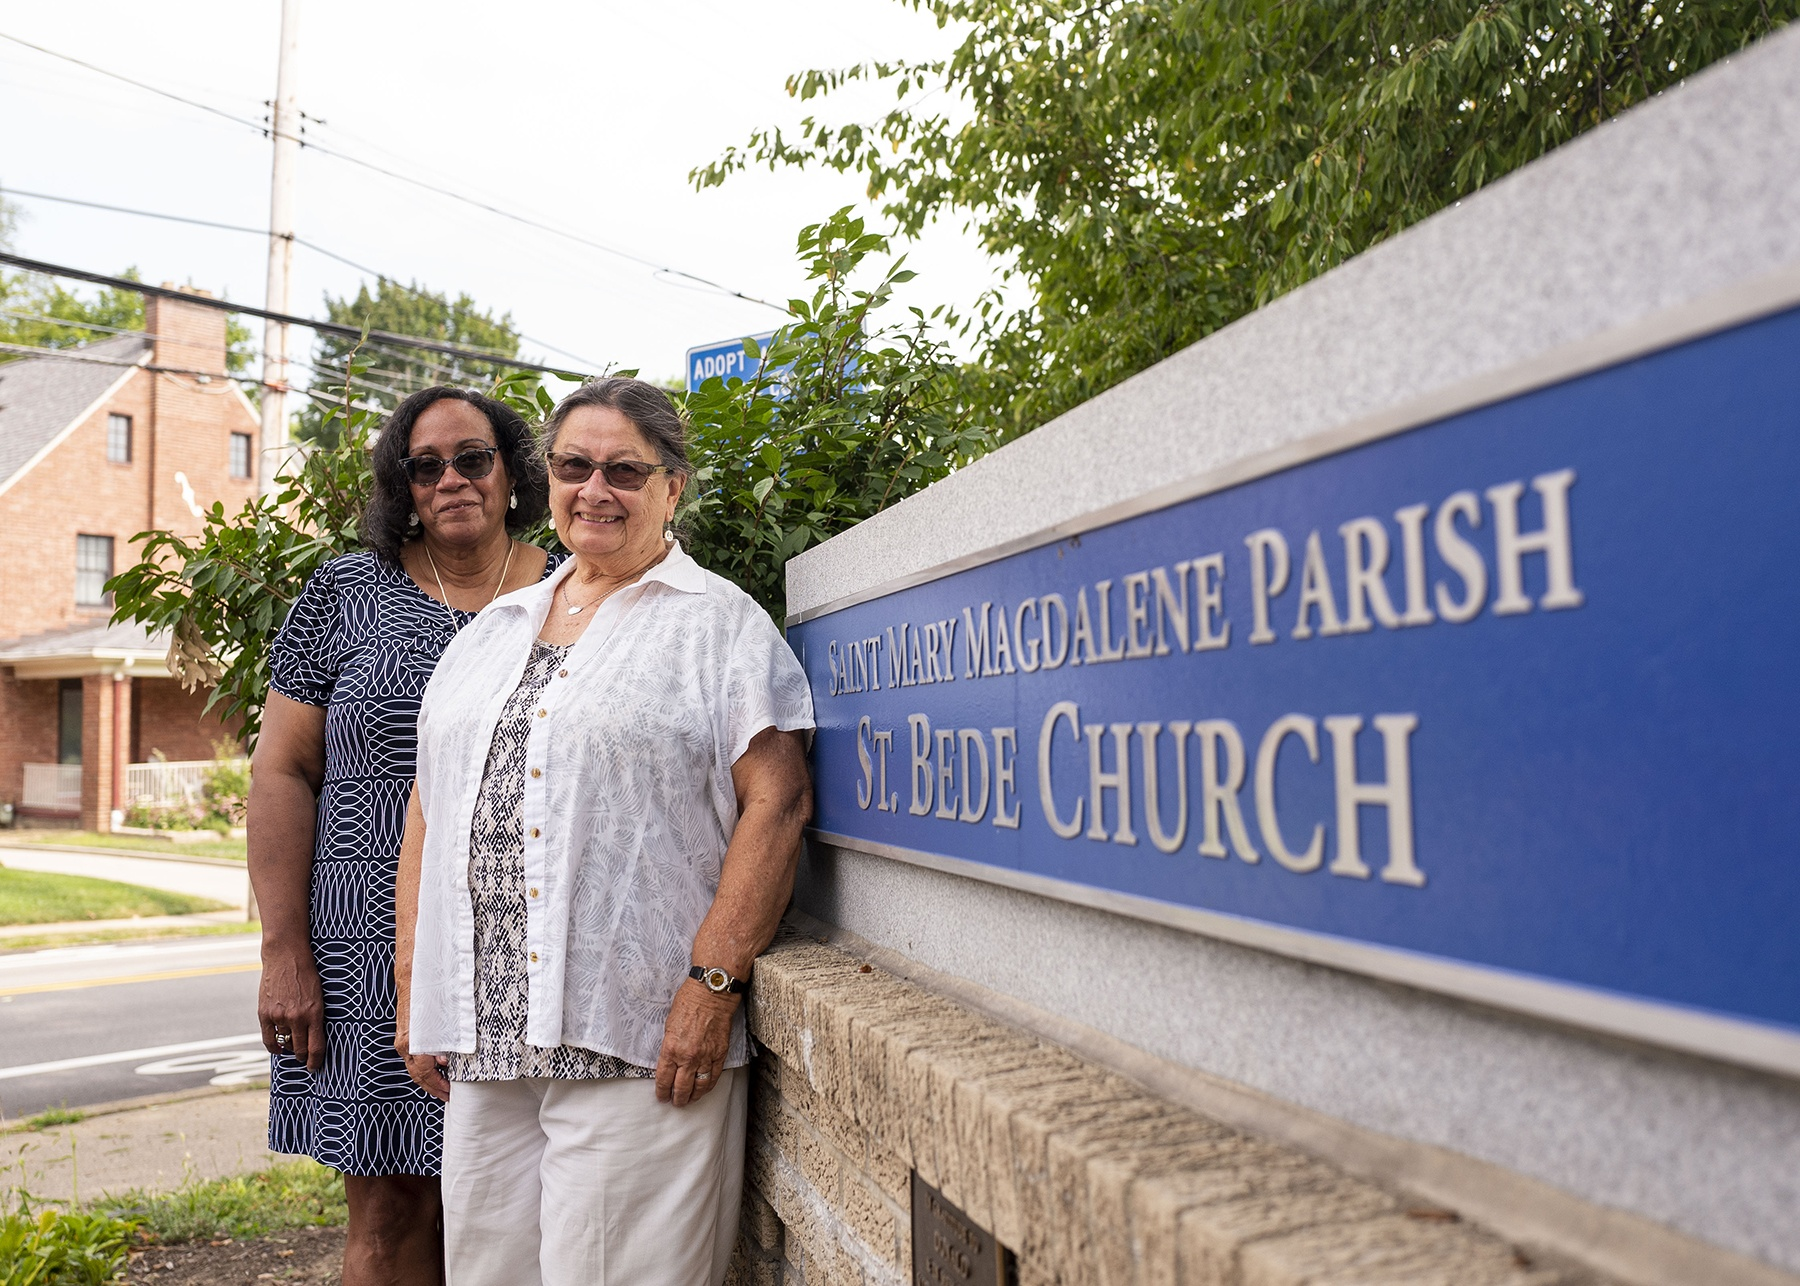 """Joyce Rothermel, right, and Sharon Currie, left, members of St. Mary Magdalene Parish, stand by a large outdoor sign that reads """"St. Mary Magdalene Parish, St. Bede Church."""""""